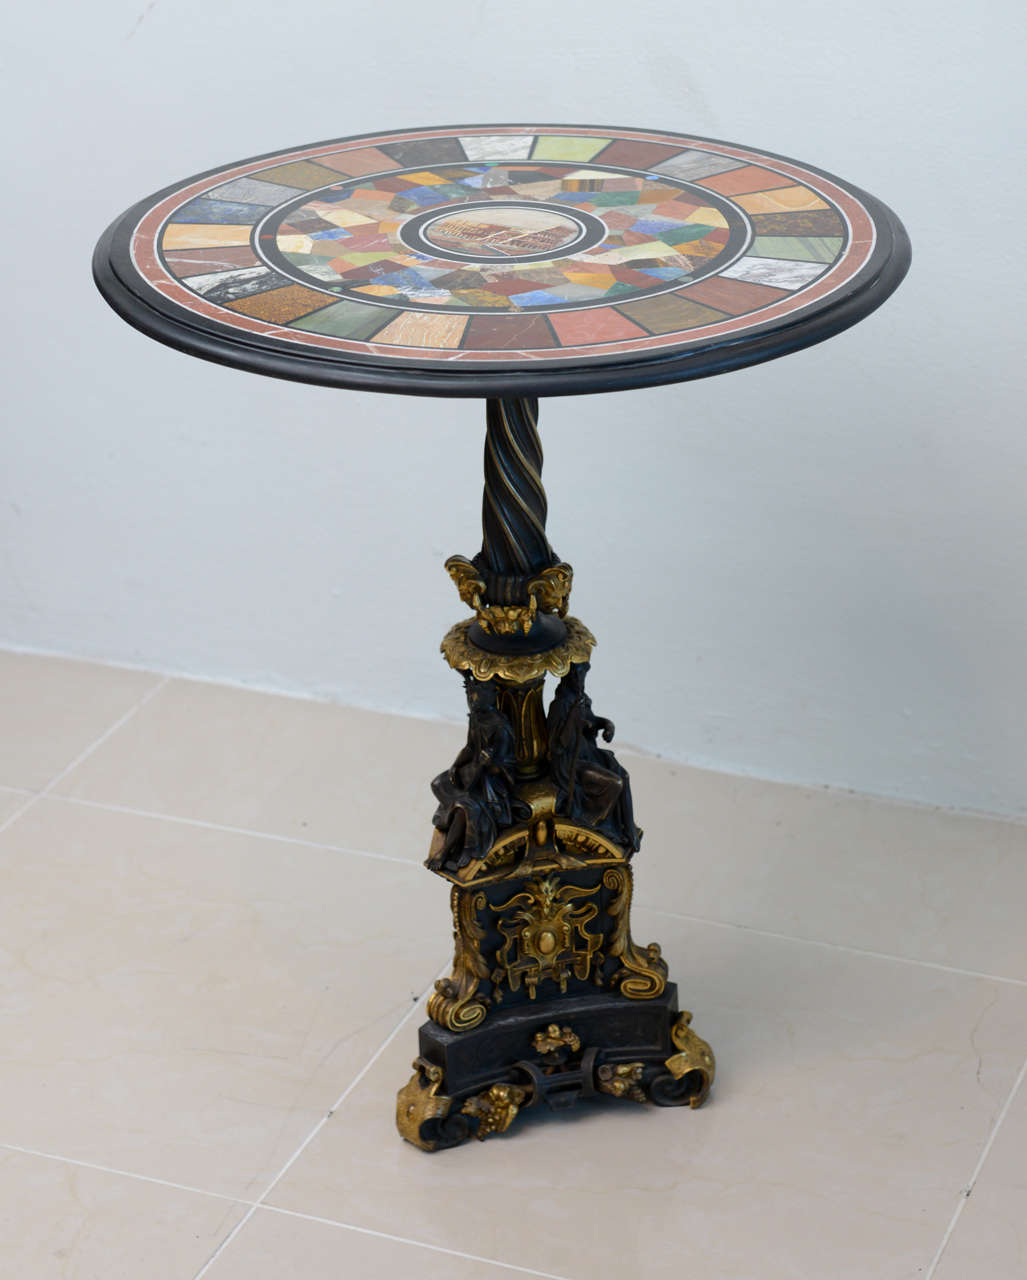 Fine Specimen Marble and Micromosaic Top Table For Sale at 1stdibs